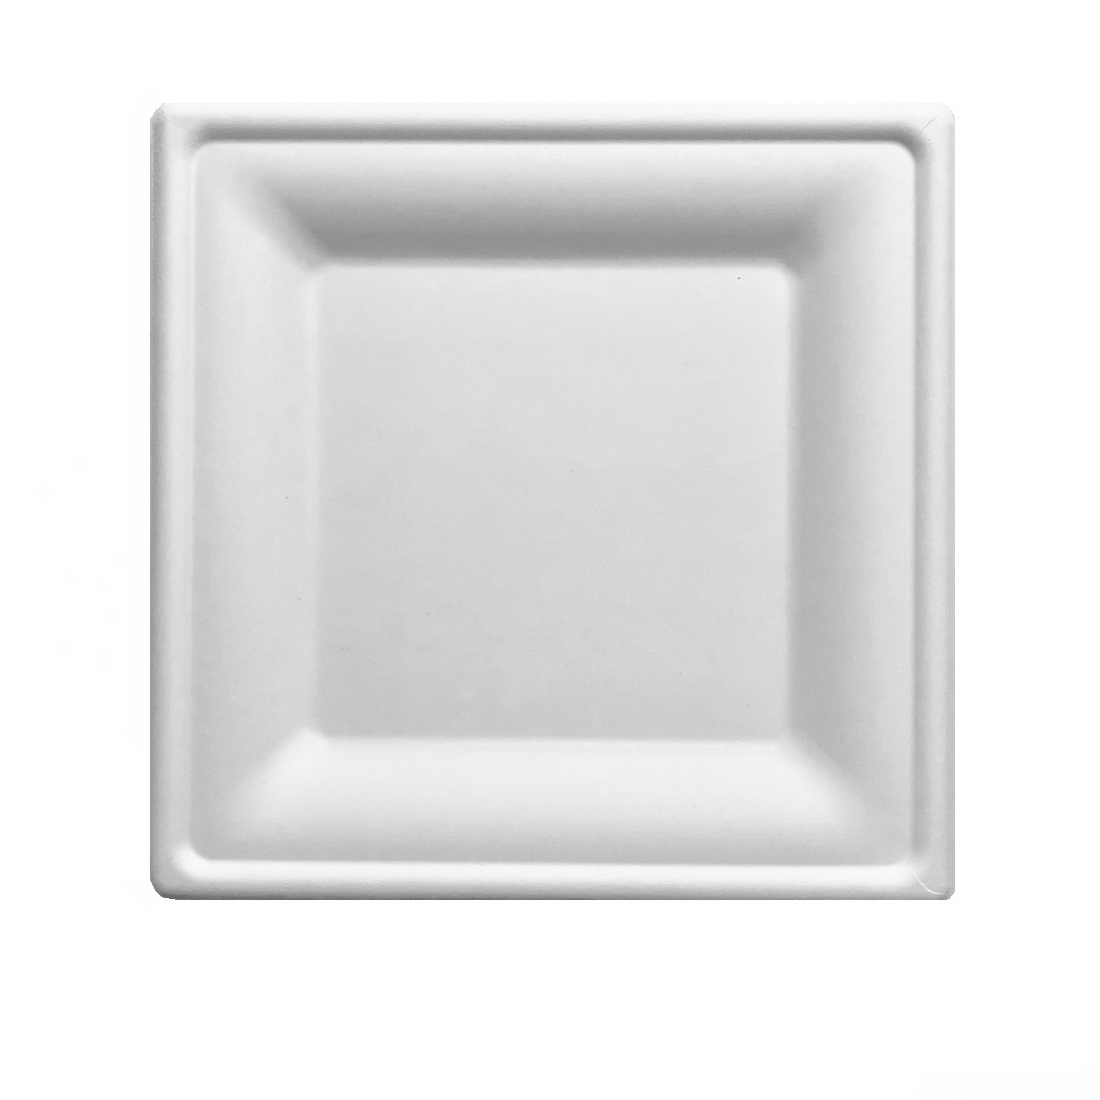 Square Biodegradable Disposable Plates [125 Pack]